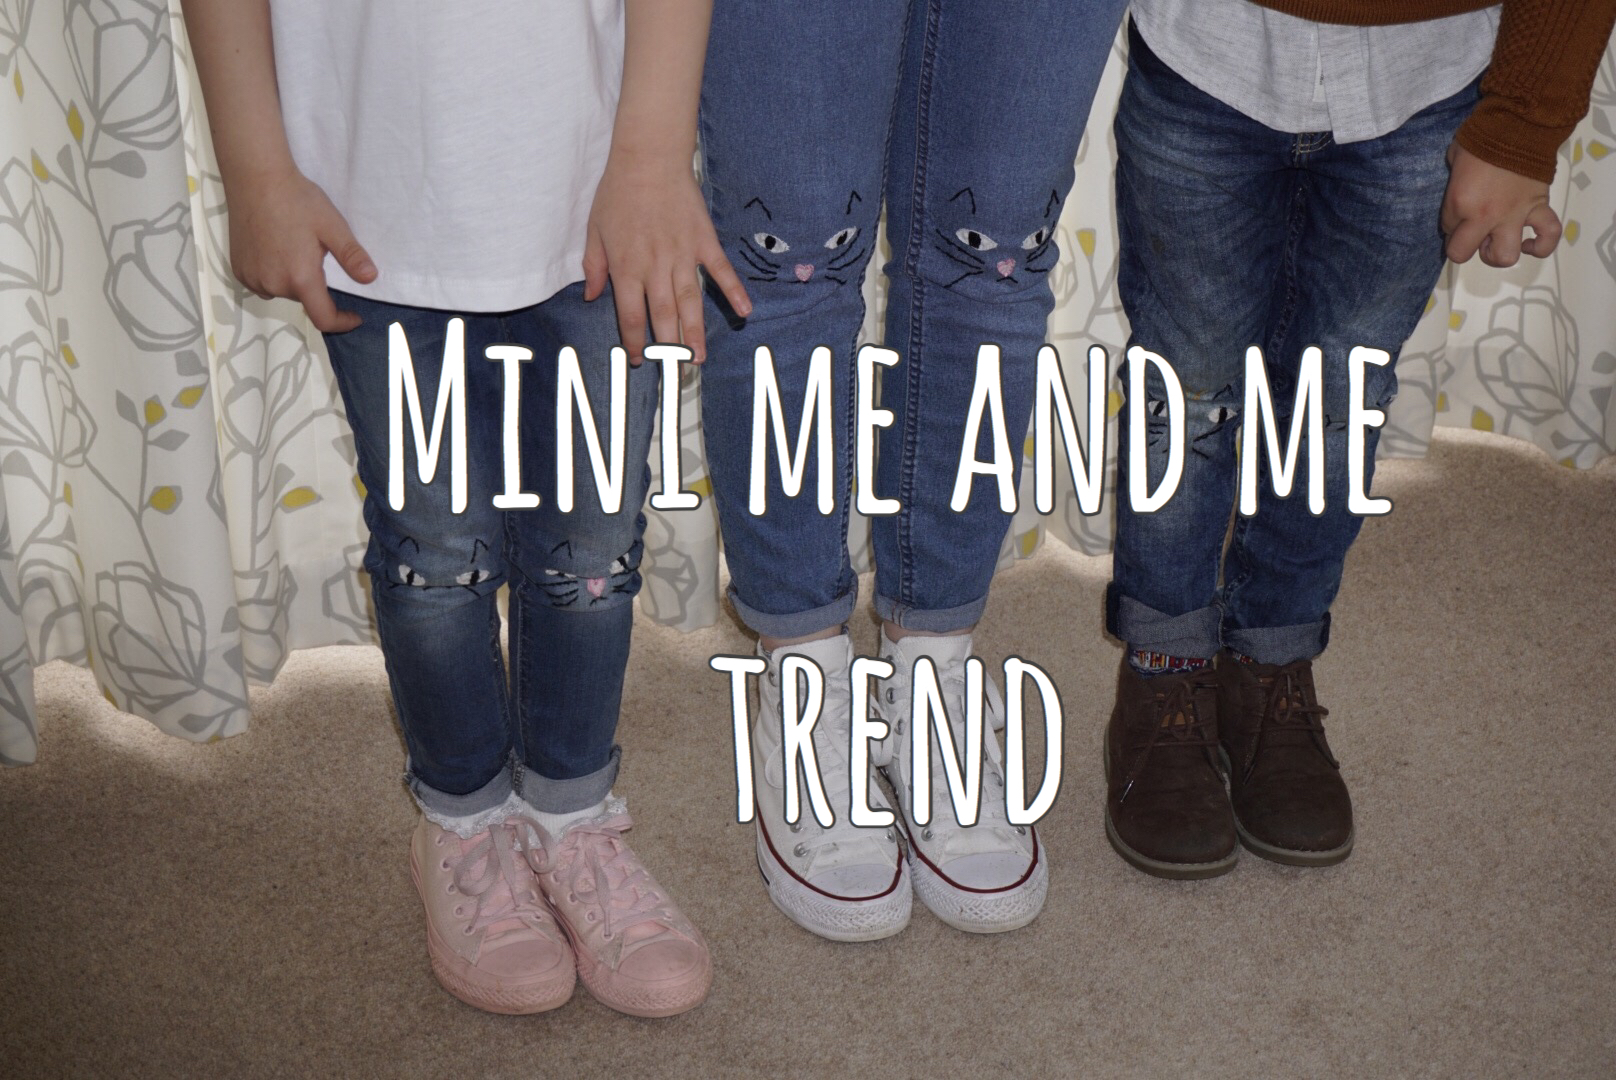 Mini Me And Me Trend graphic